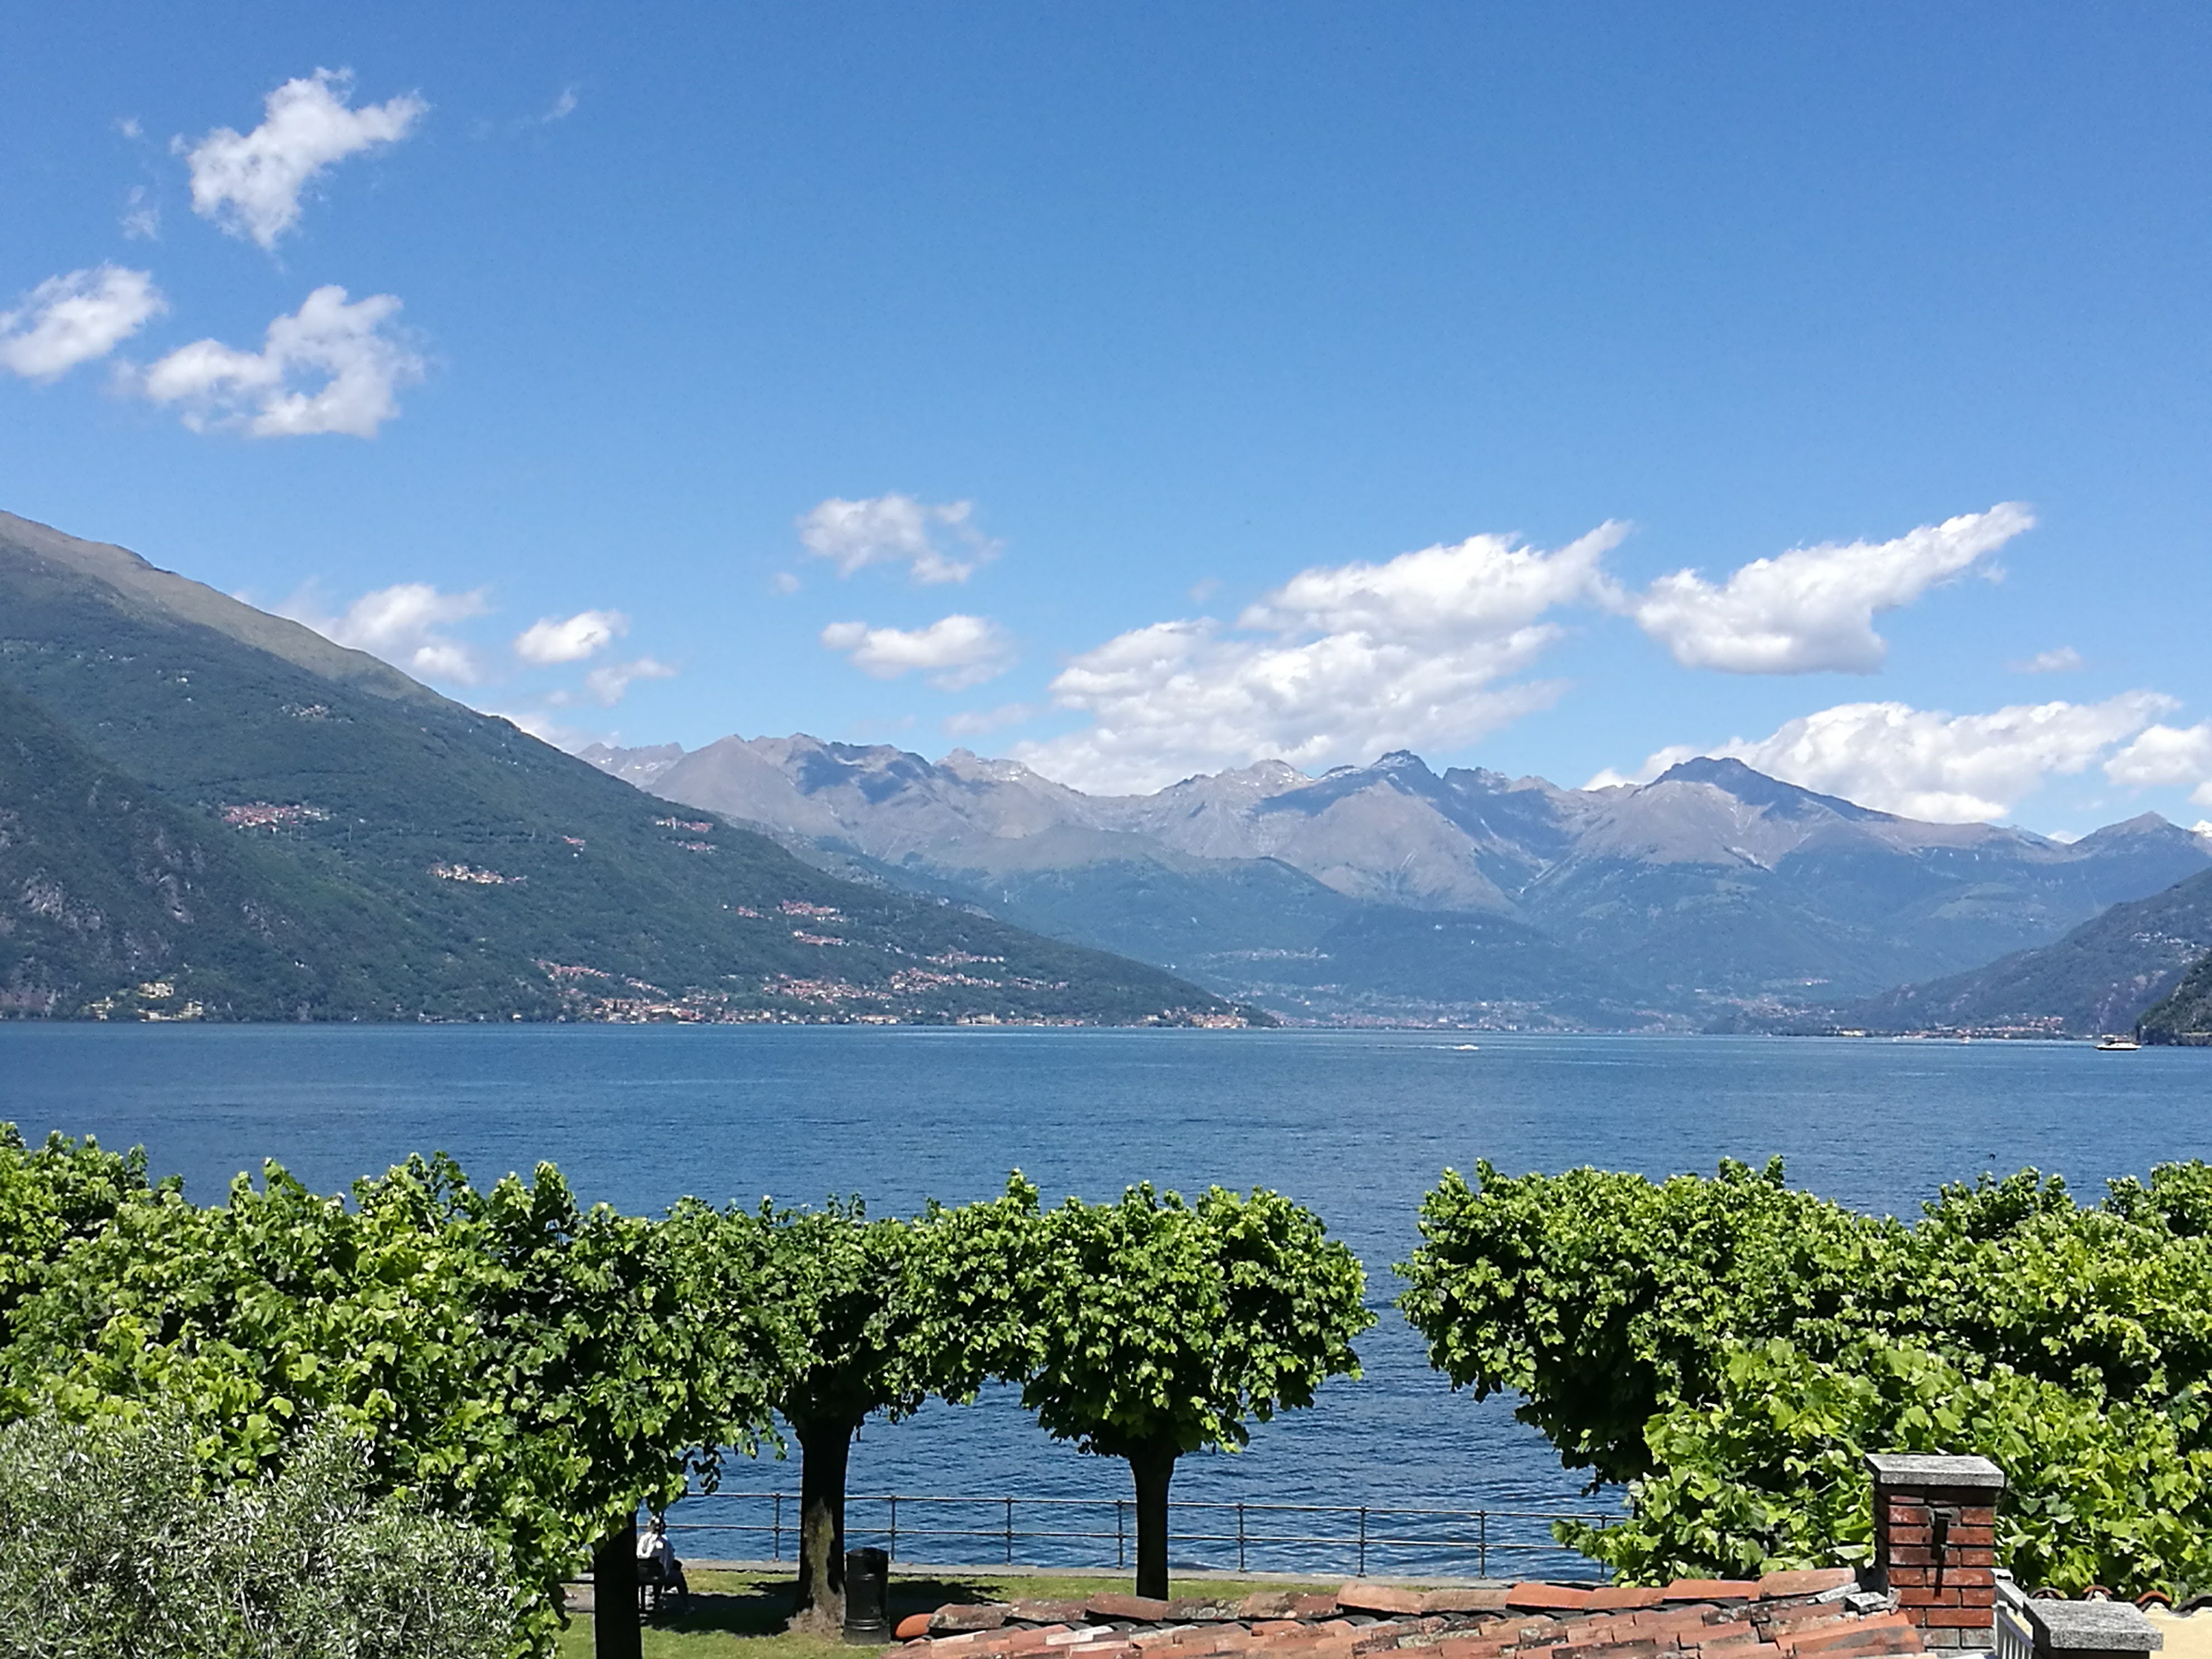 The view of Lake Como from Bellagio